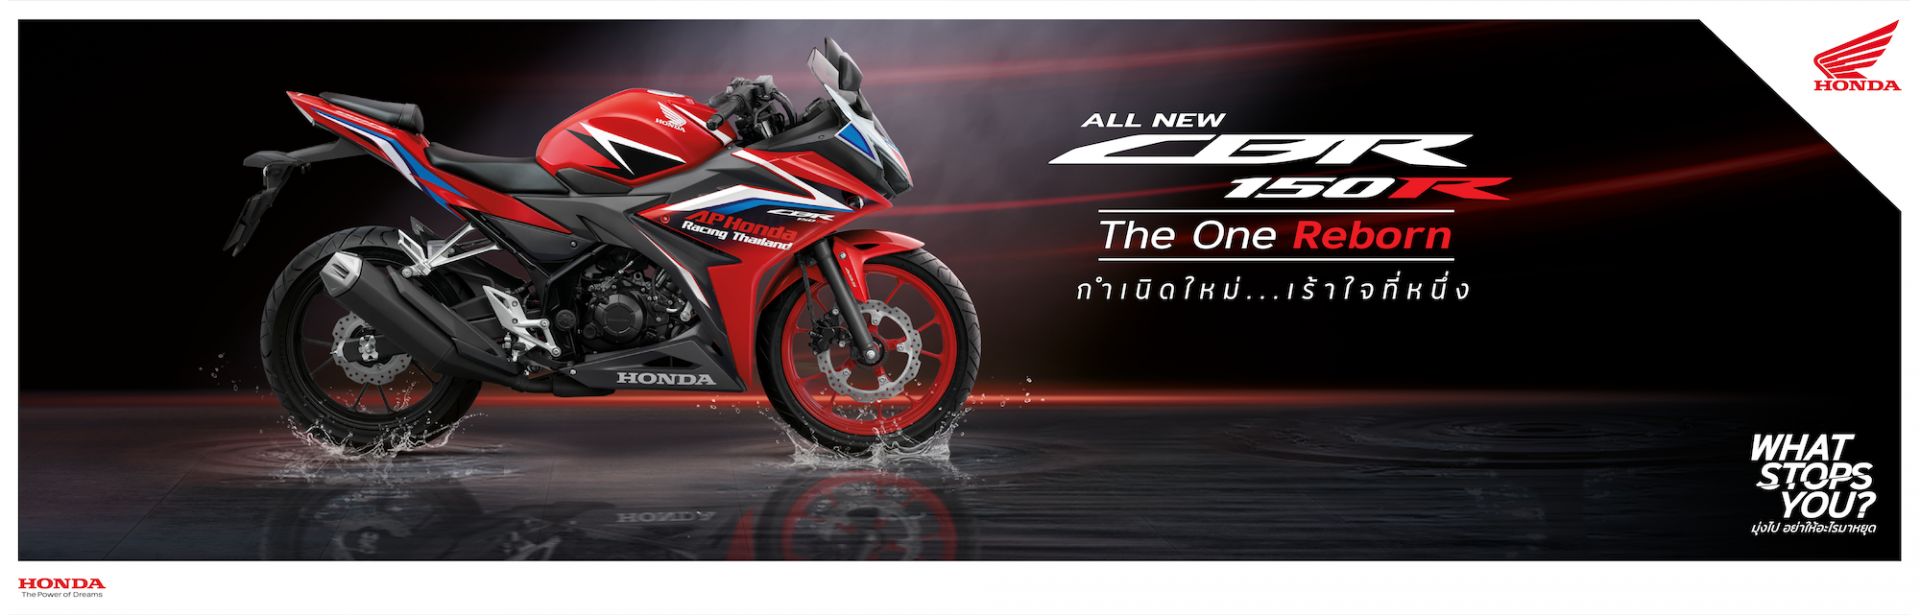 aphonda-banner-All-New-CBR150R-2019